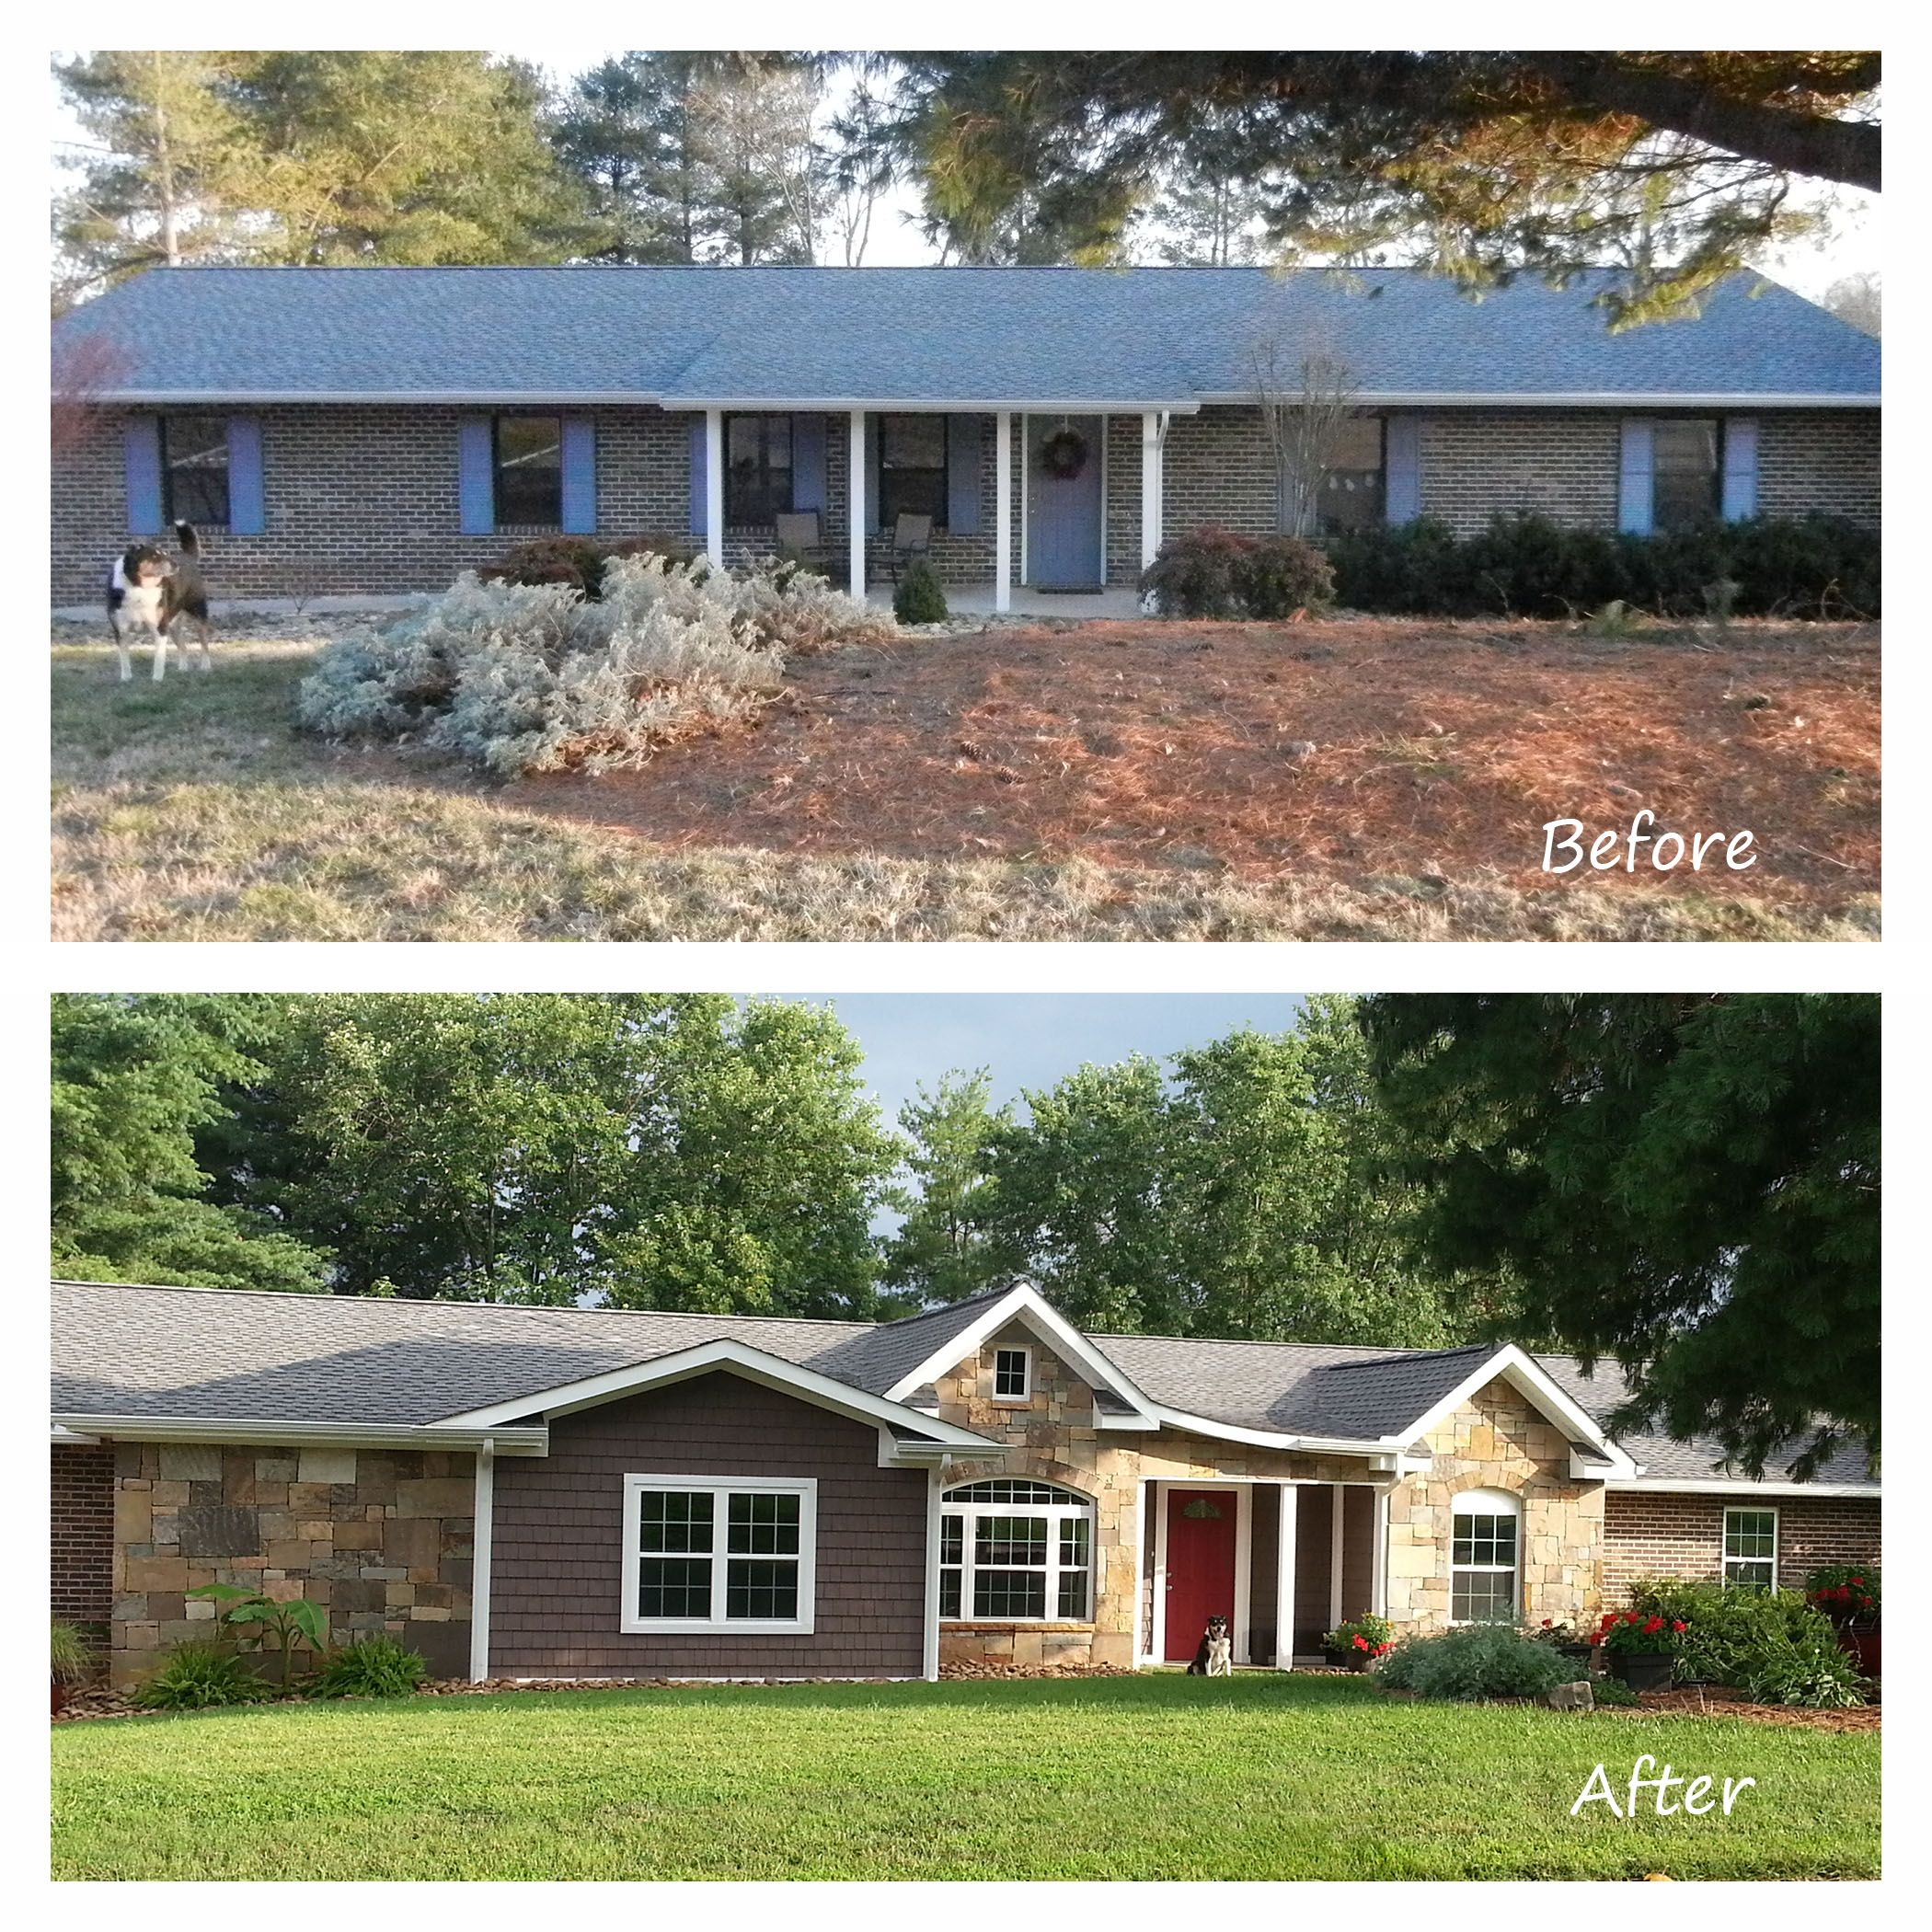 before and after exterior renovation ranch house remodel. Black Bedroom Furniture Sets. Home Design Ideas